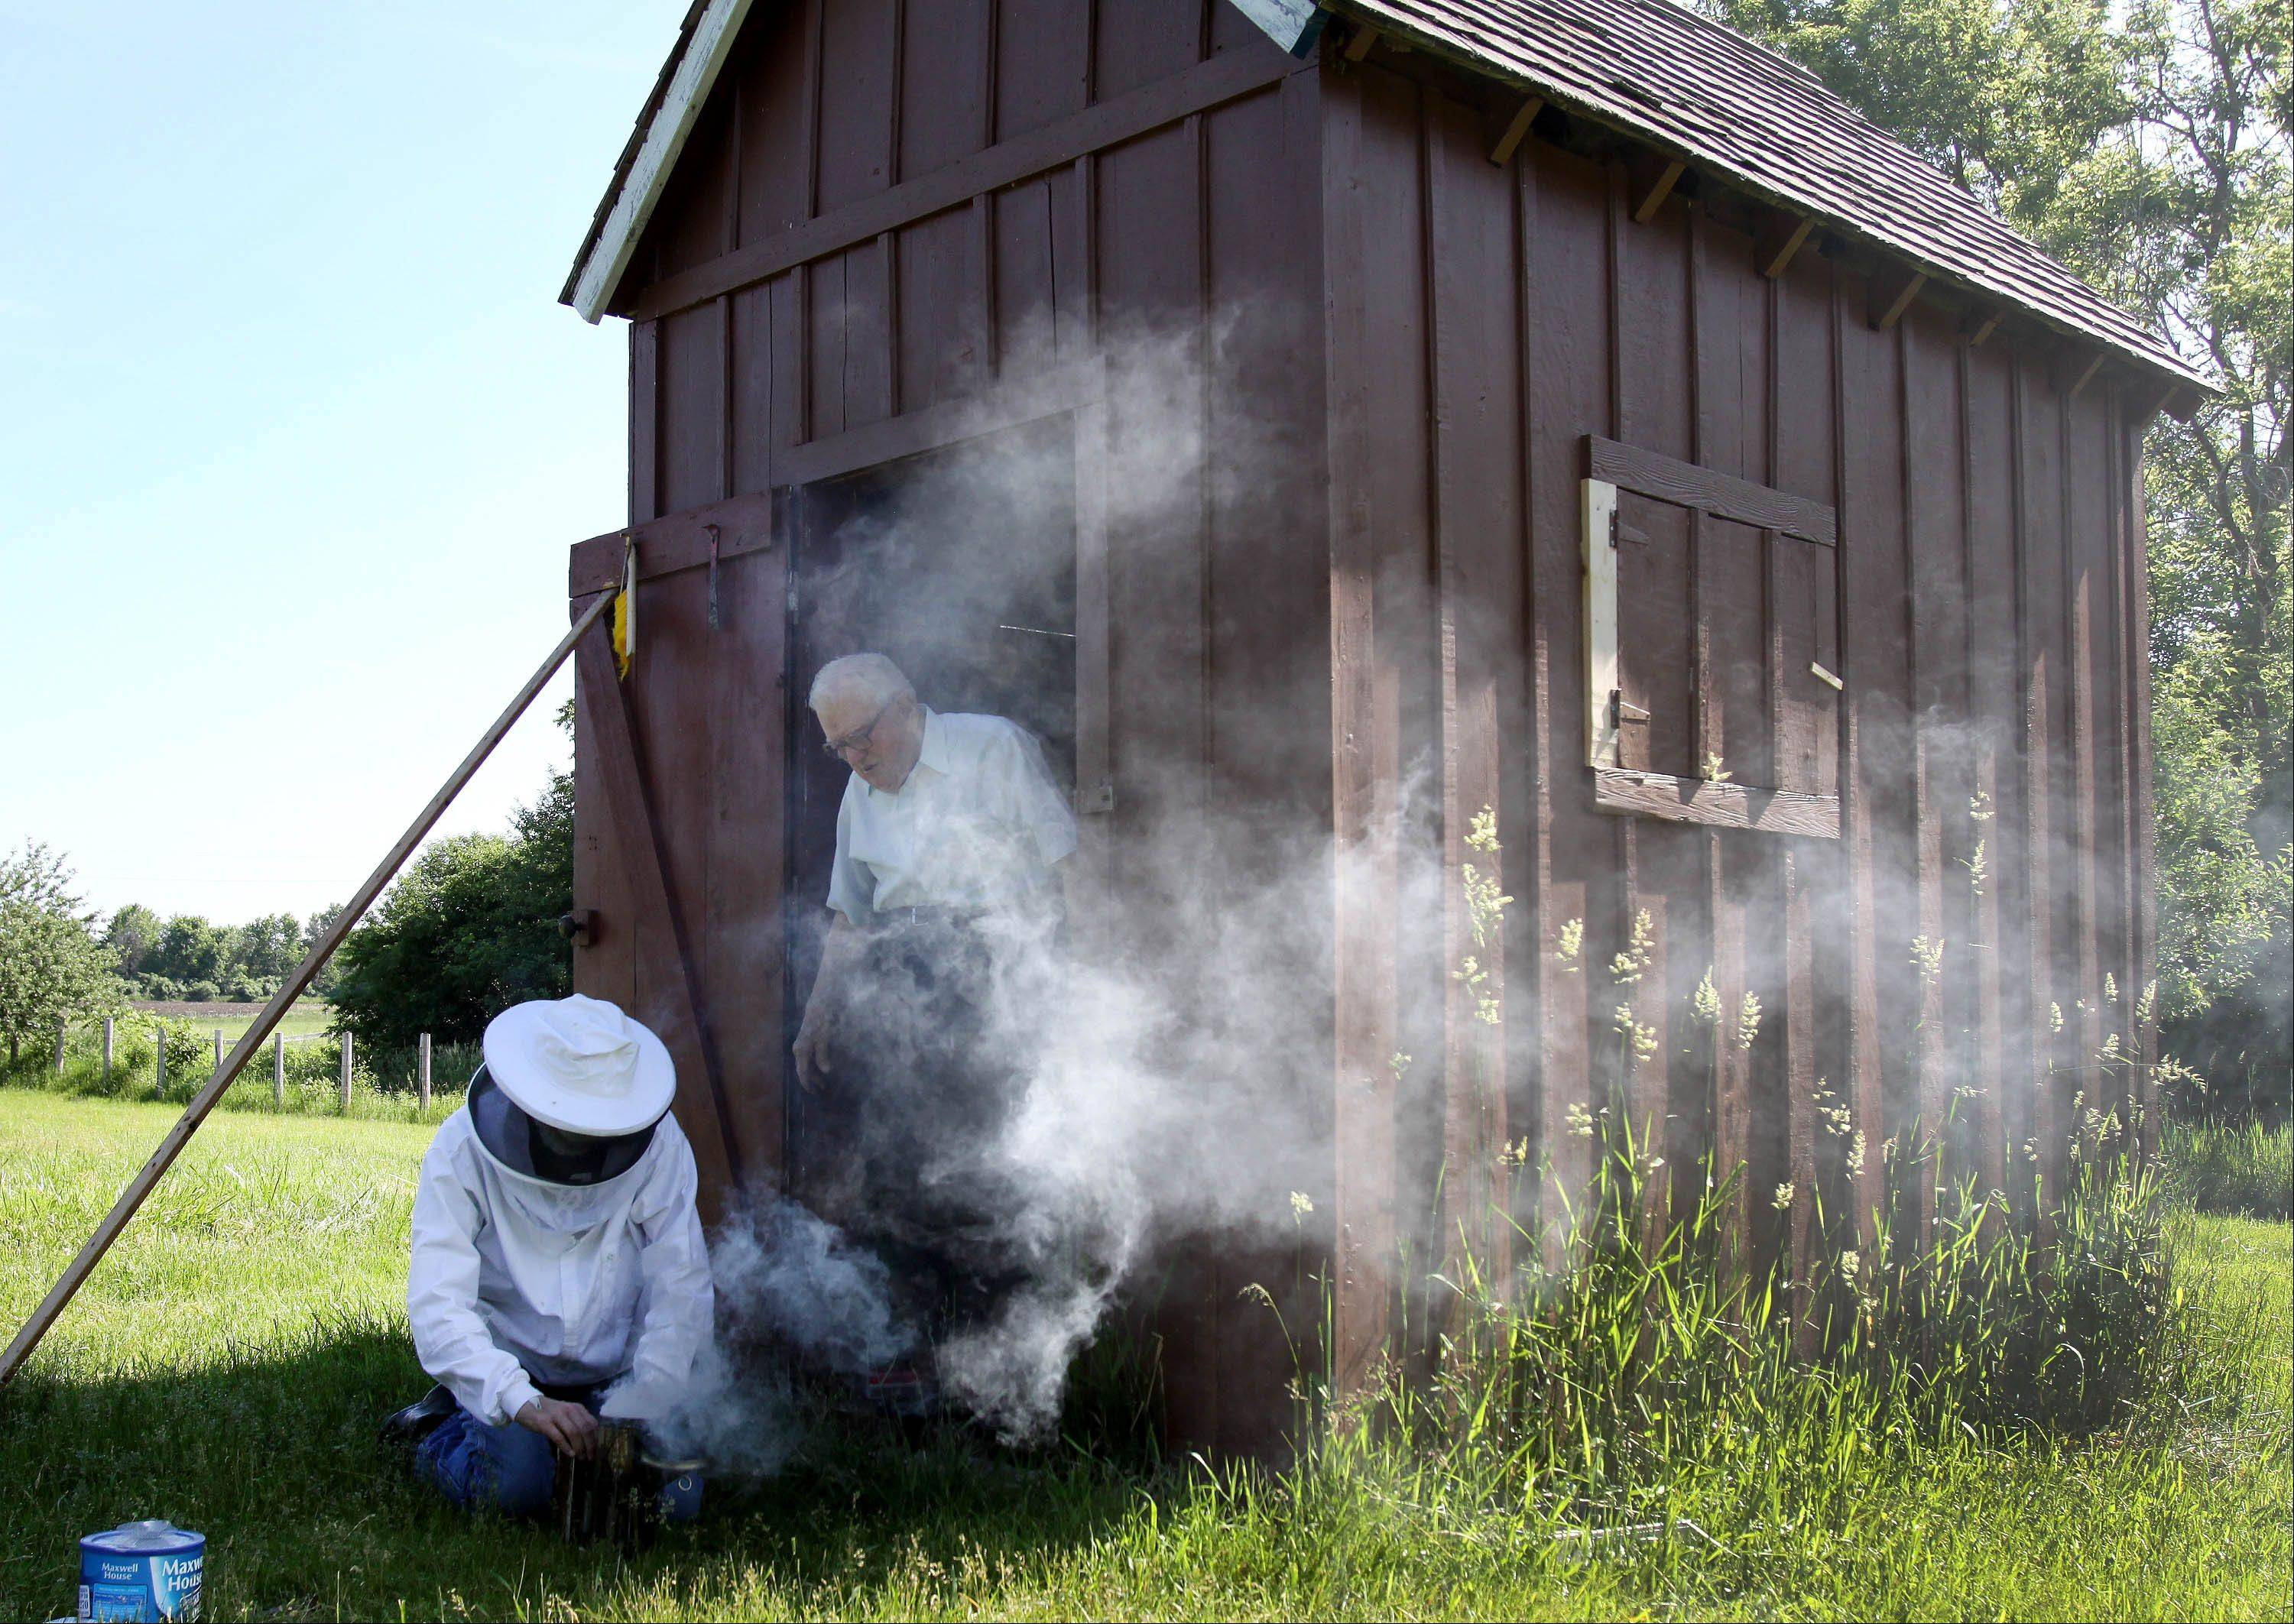 DuBose comes out of the shed as volunteer Duane Marski gets the smoker ready to tend to the bees.